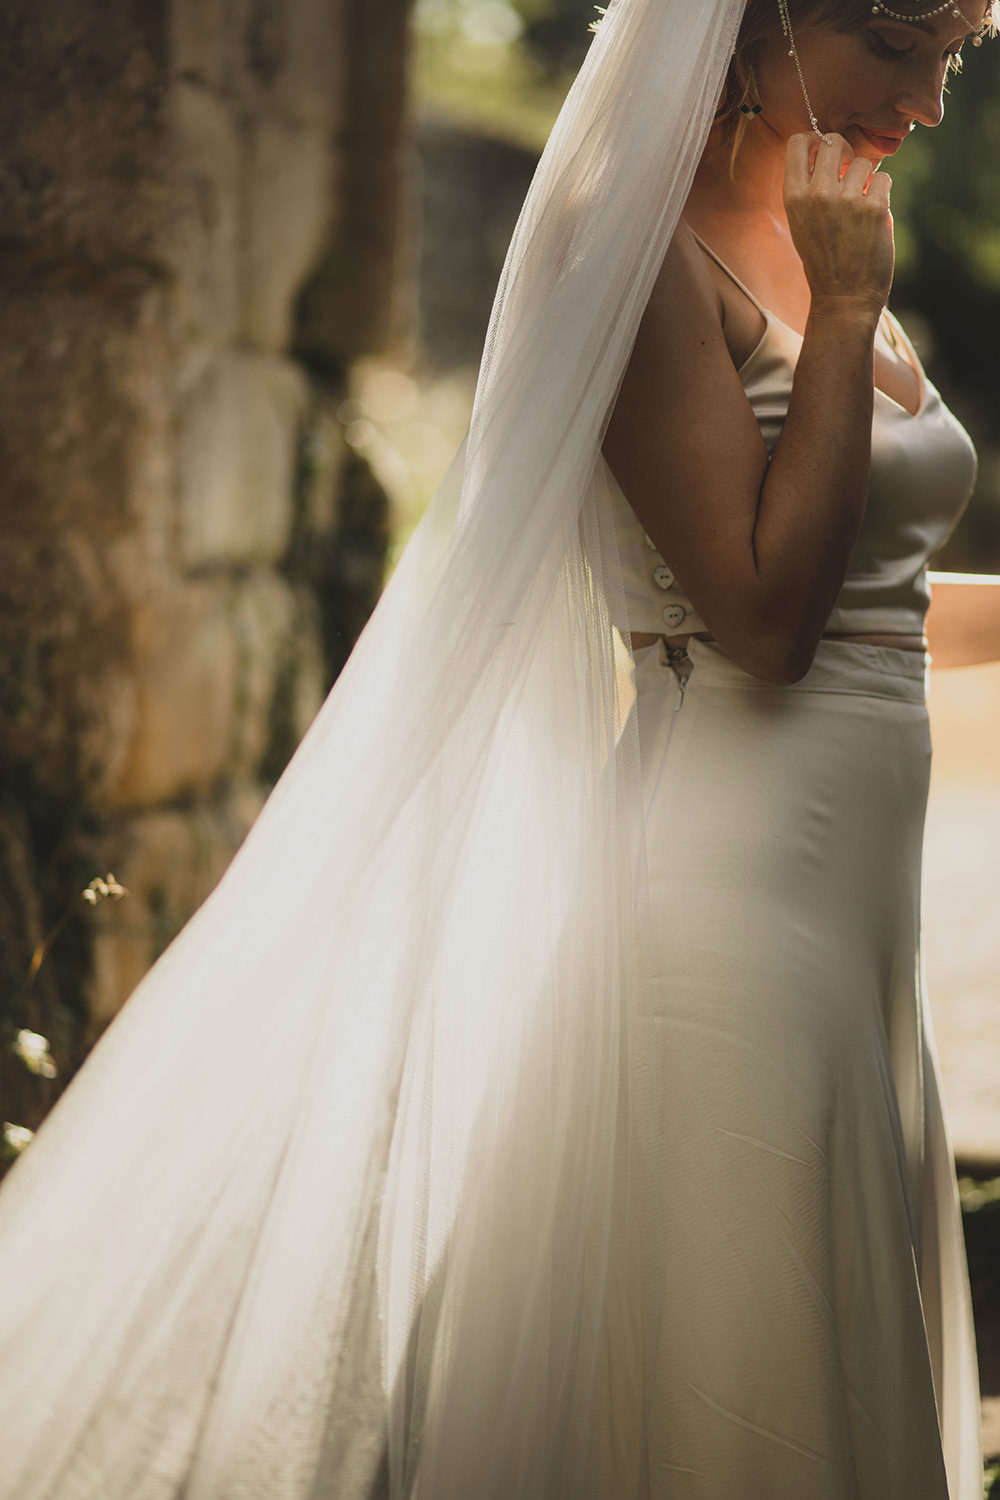 Jervaulx Abbey Wedding Ideas Laura Adams Photography Dress Gown Bride Bridal Top Skirt Separates Luna Bride